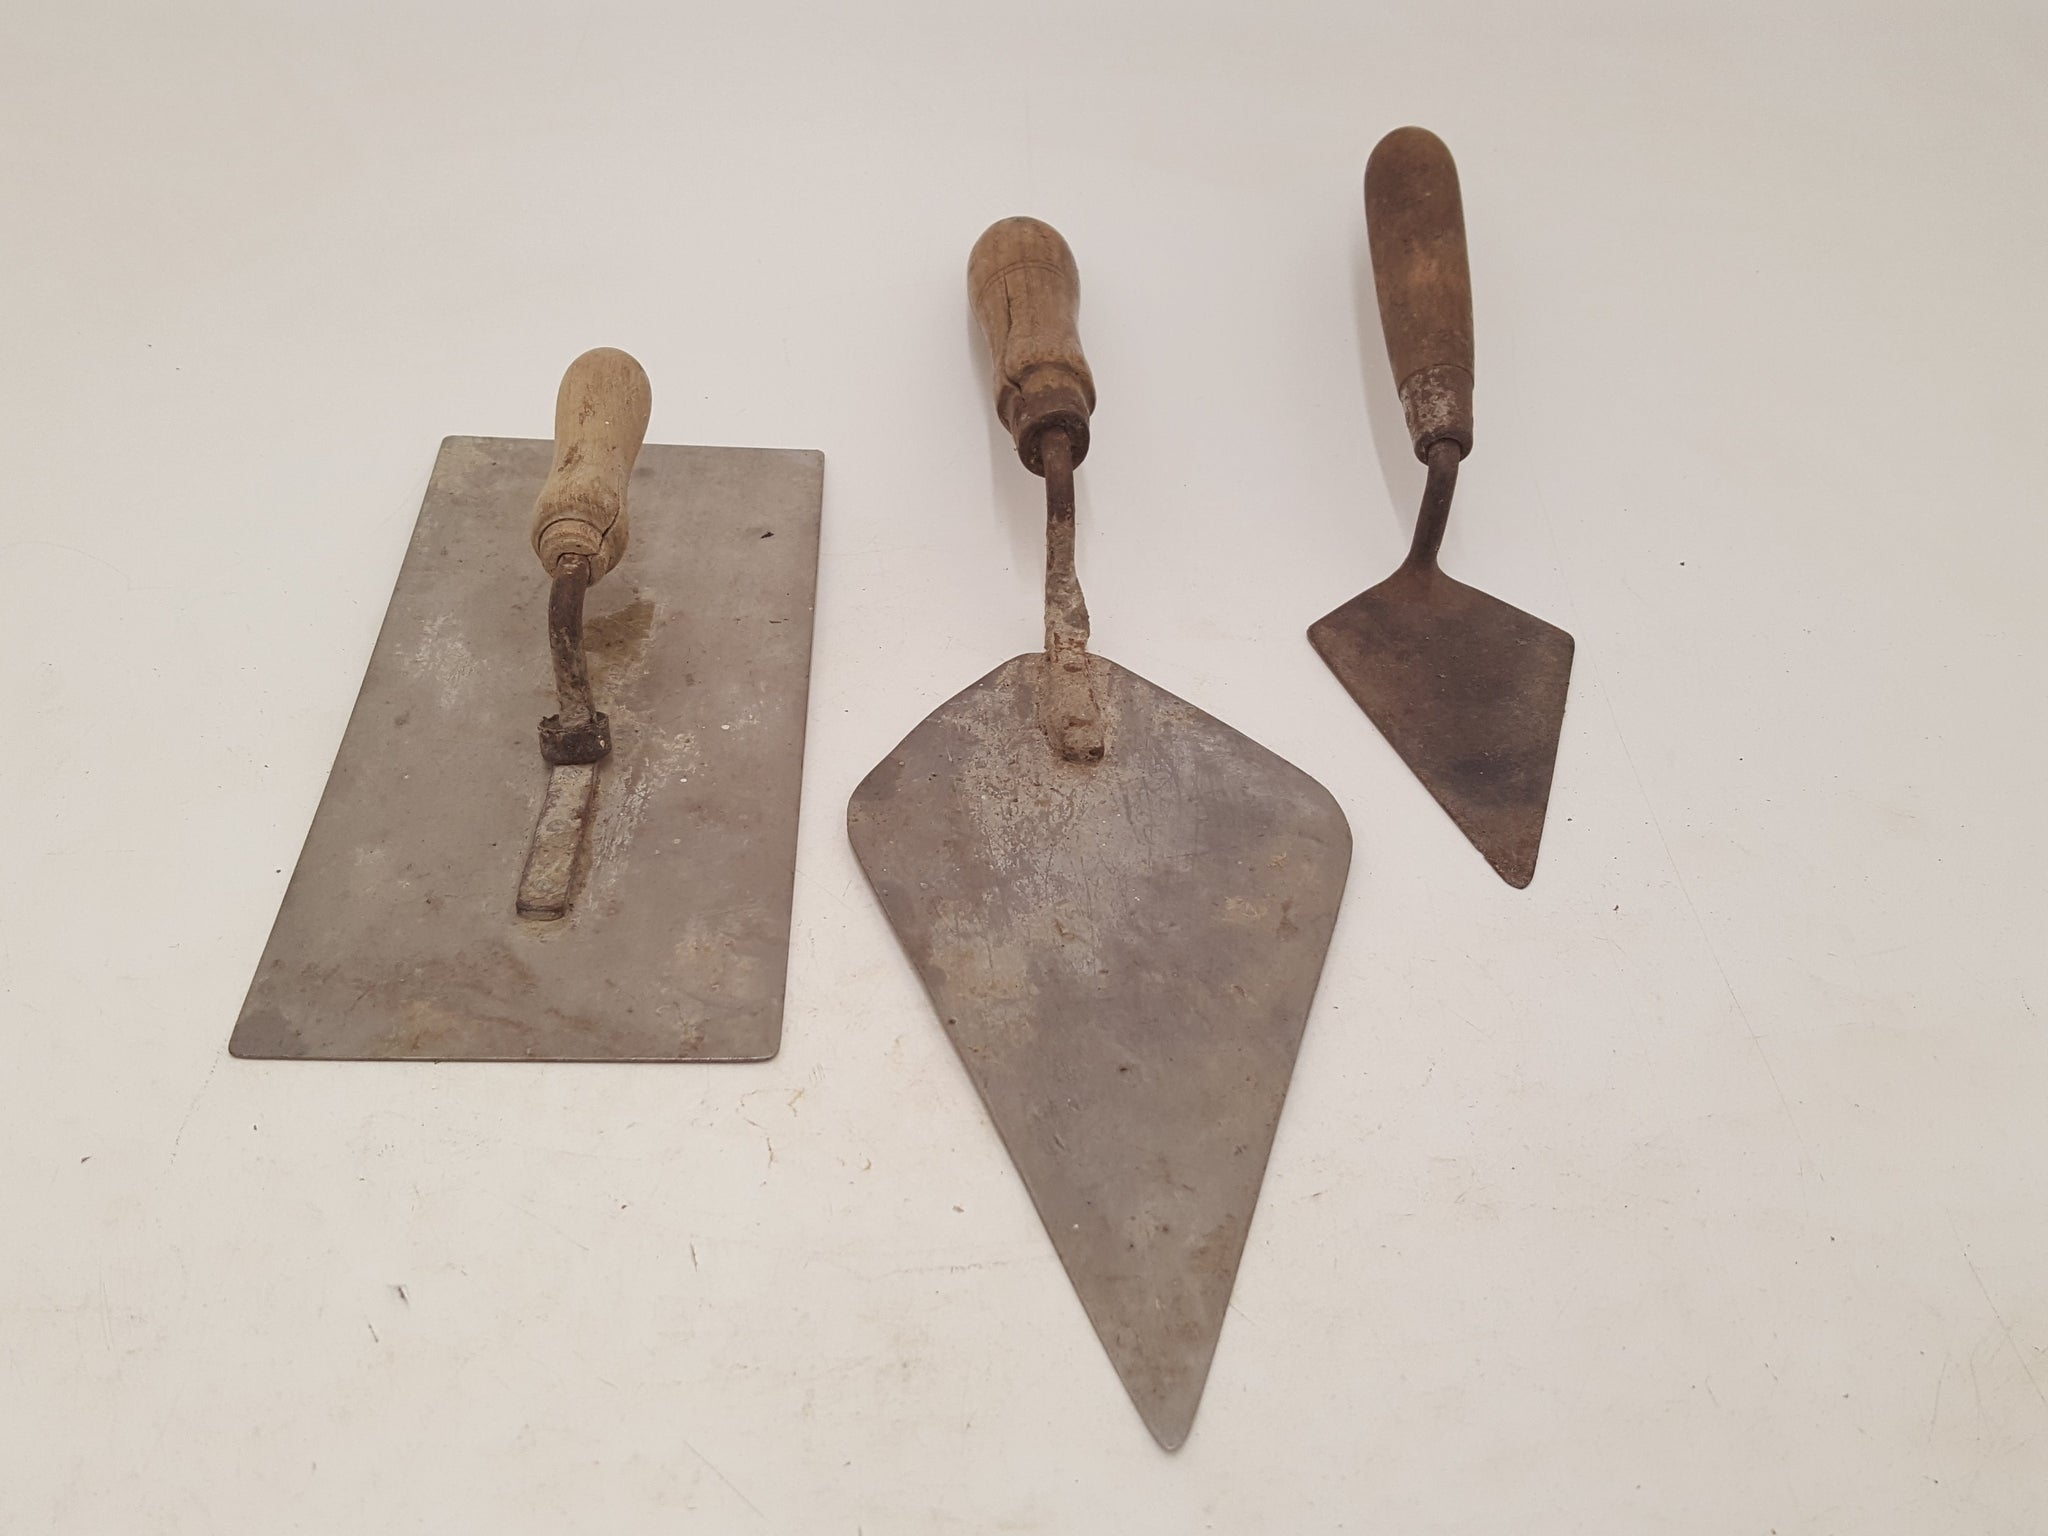 Set of 3 Vintage Bricklayers Trowels 26480